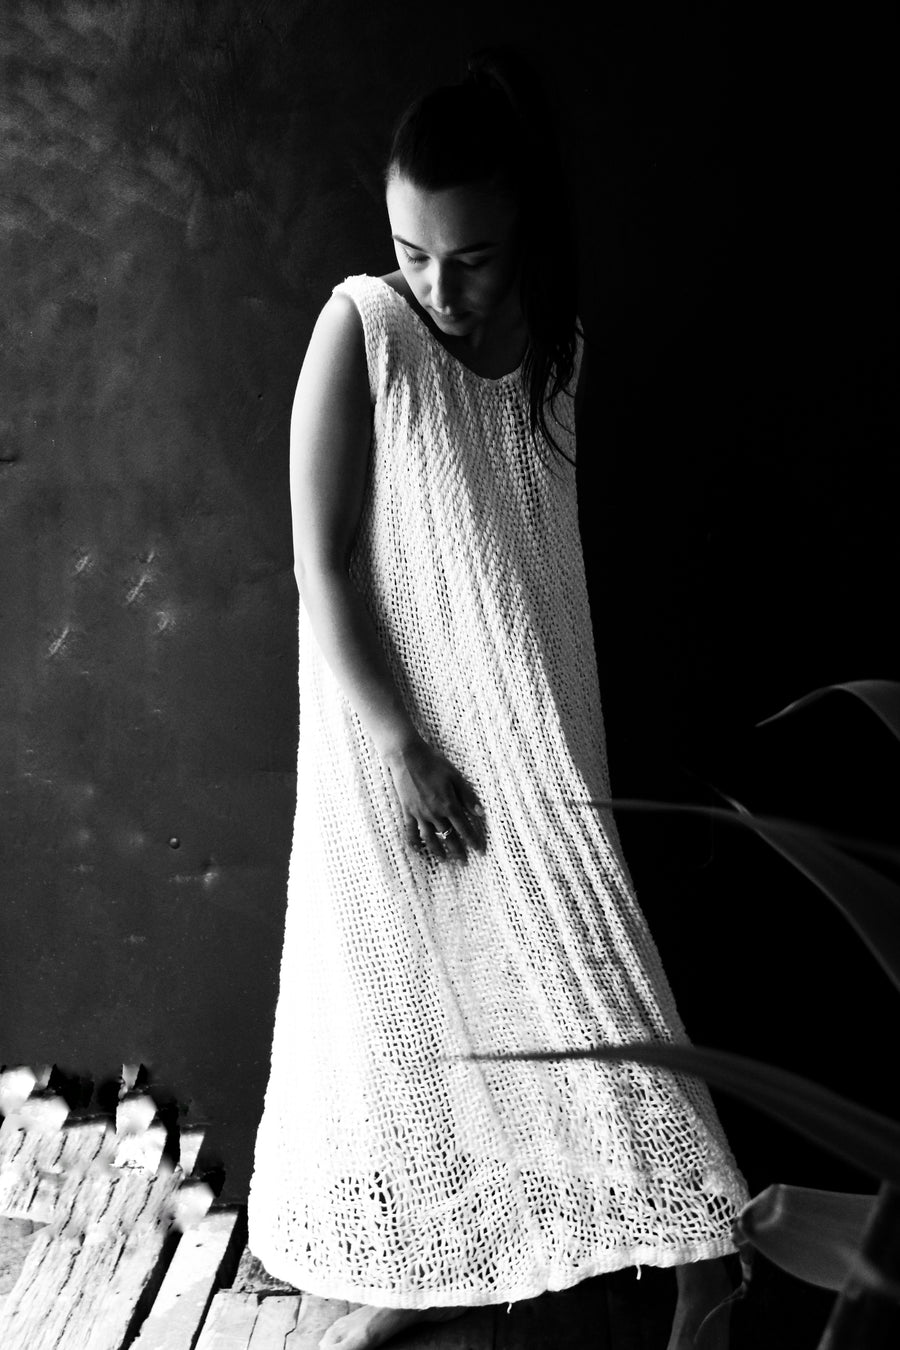 Amano loom woven maxi dress